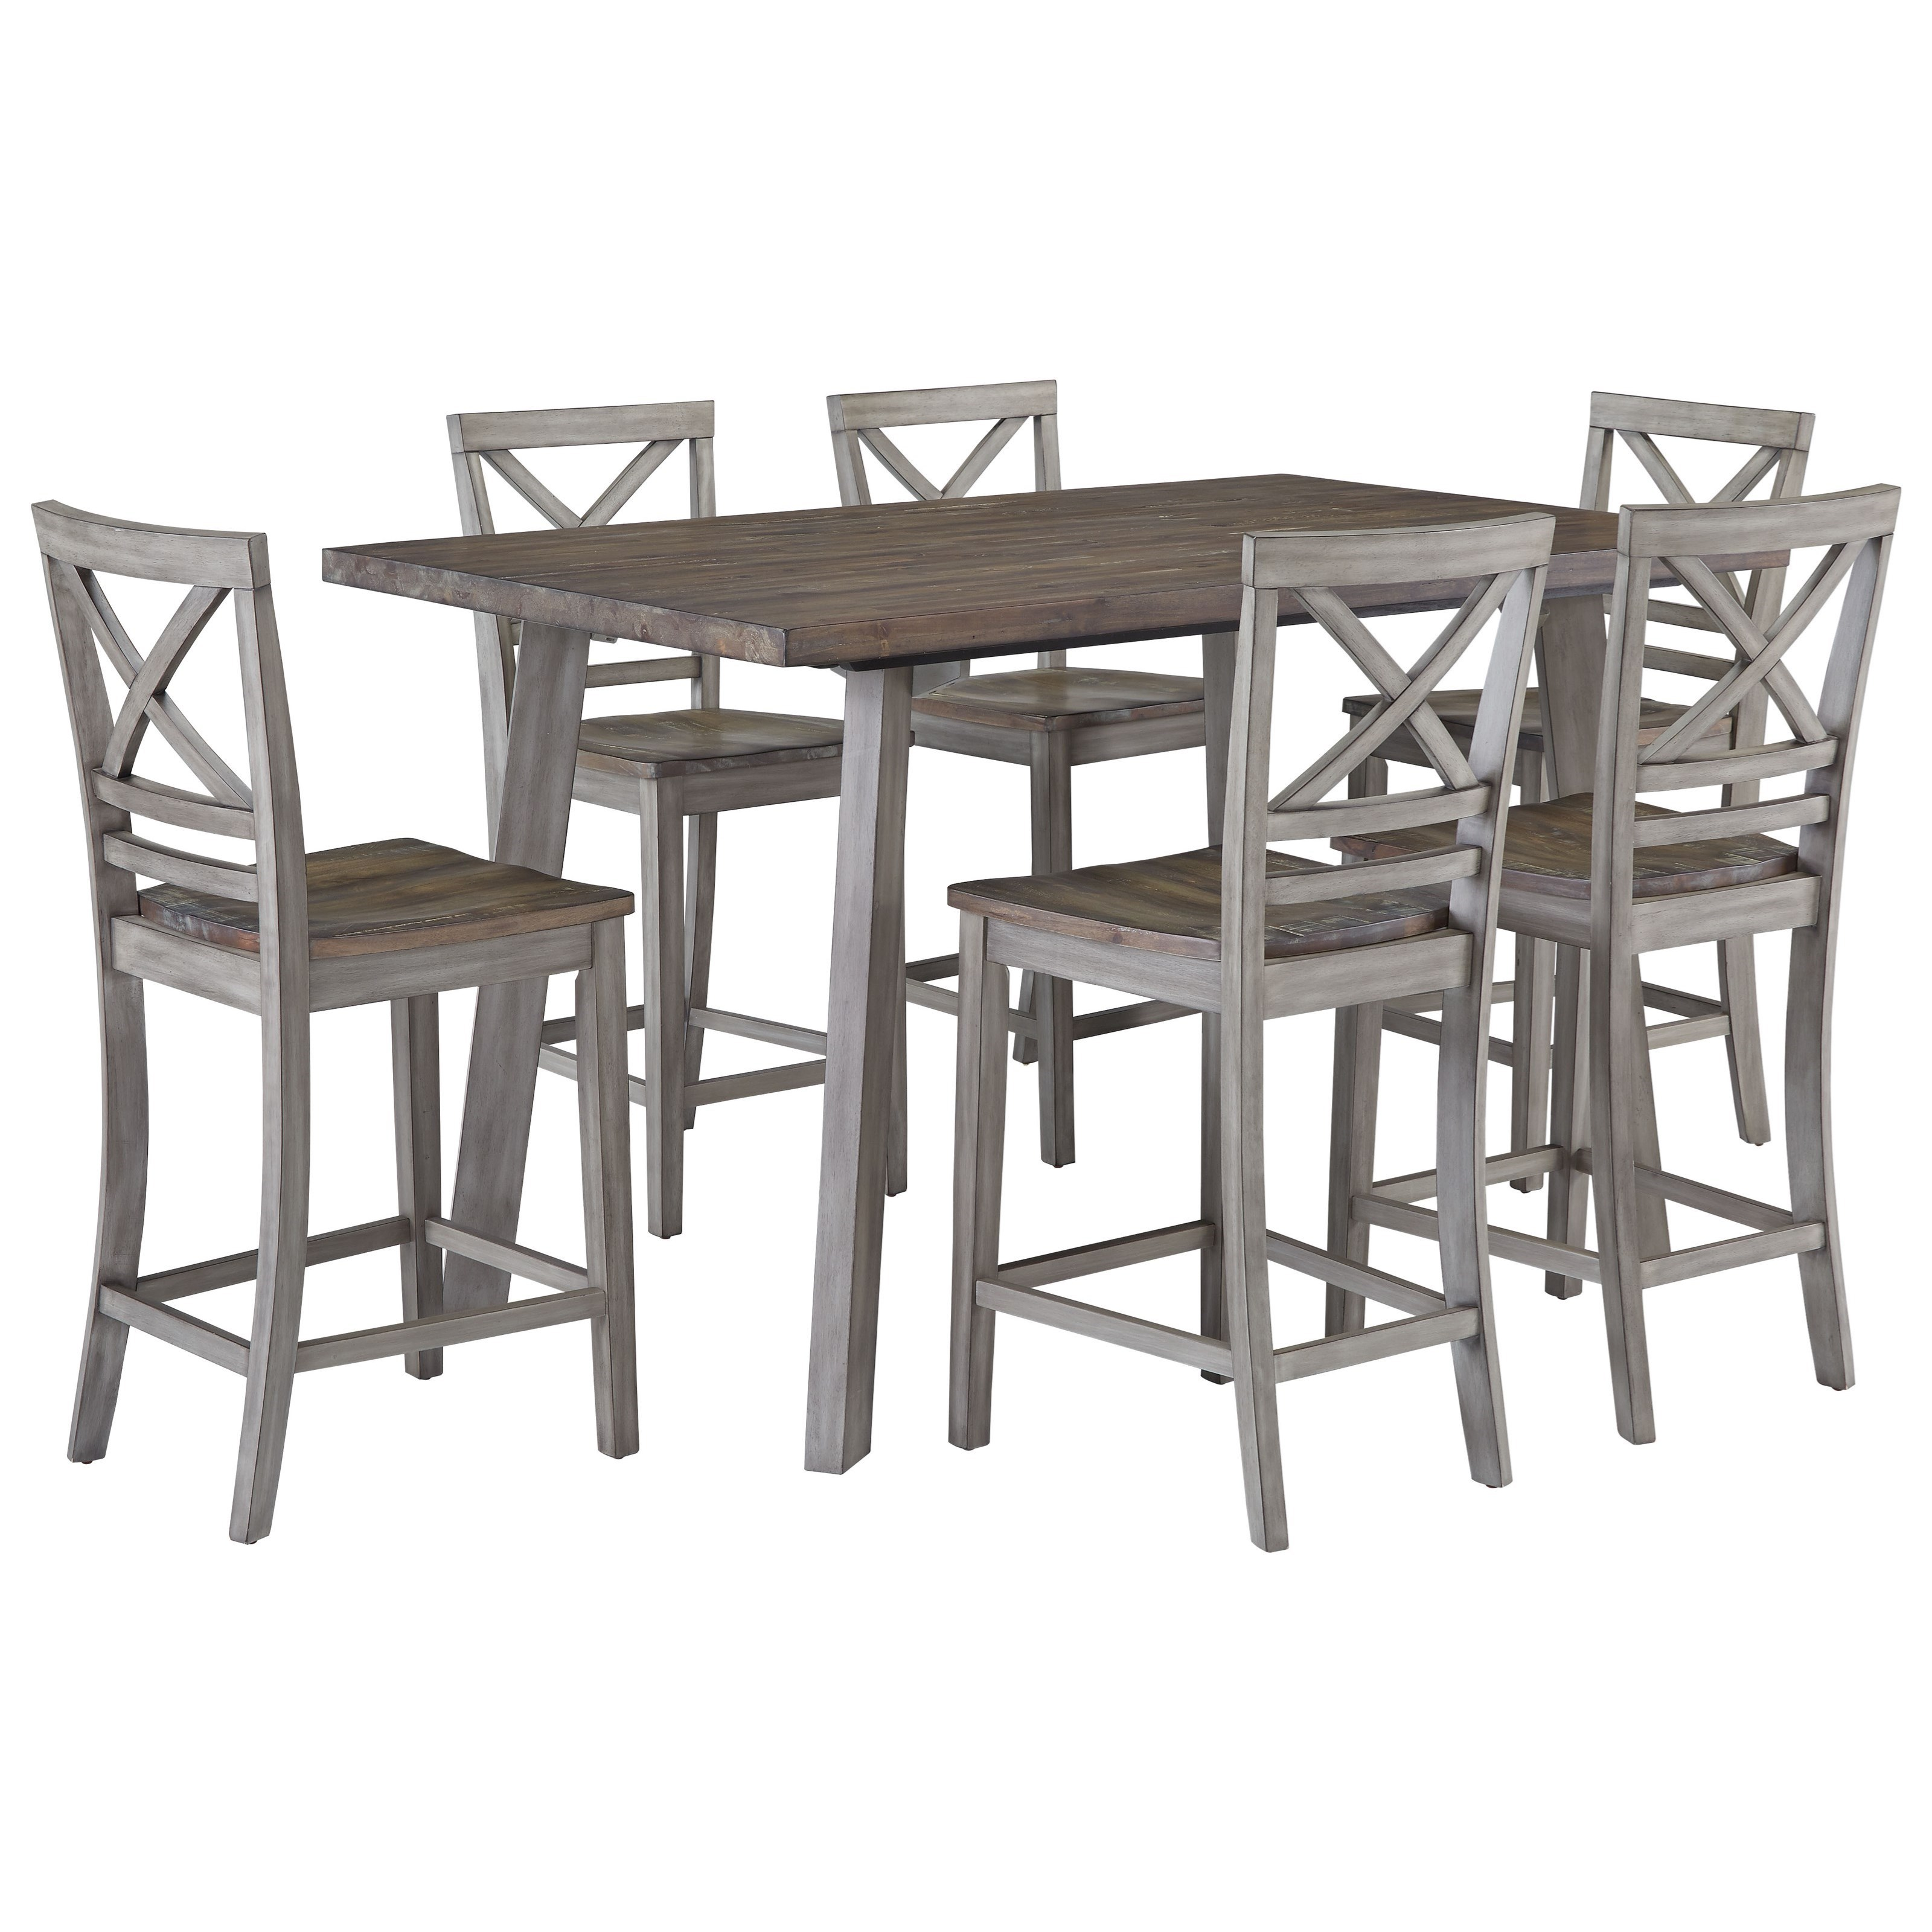 Standard furniture fairhaven rustic table set with six for Table 6 kitchen and bar canton ohio